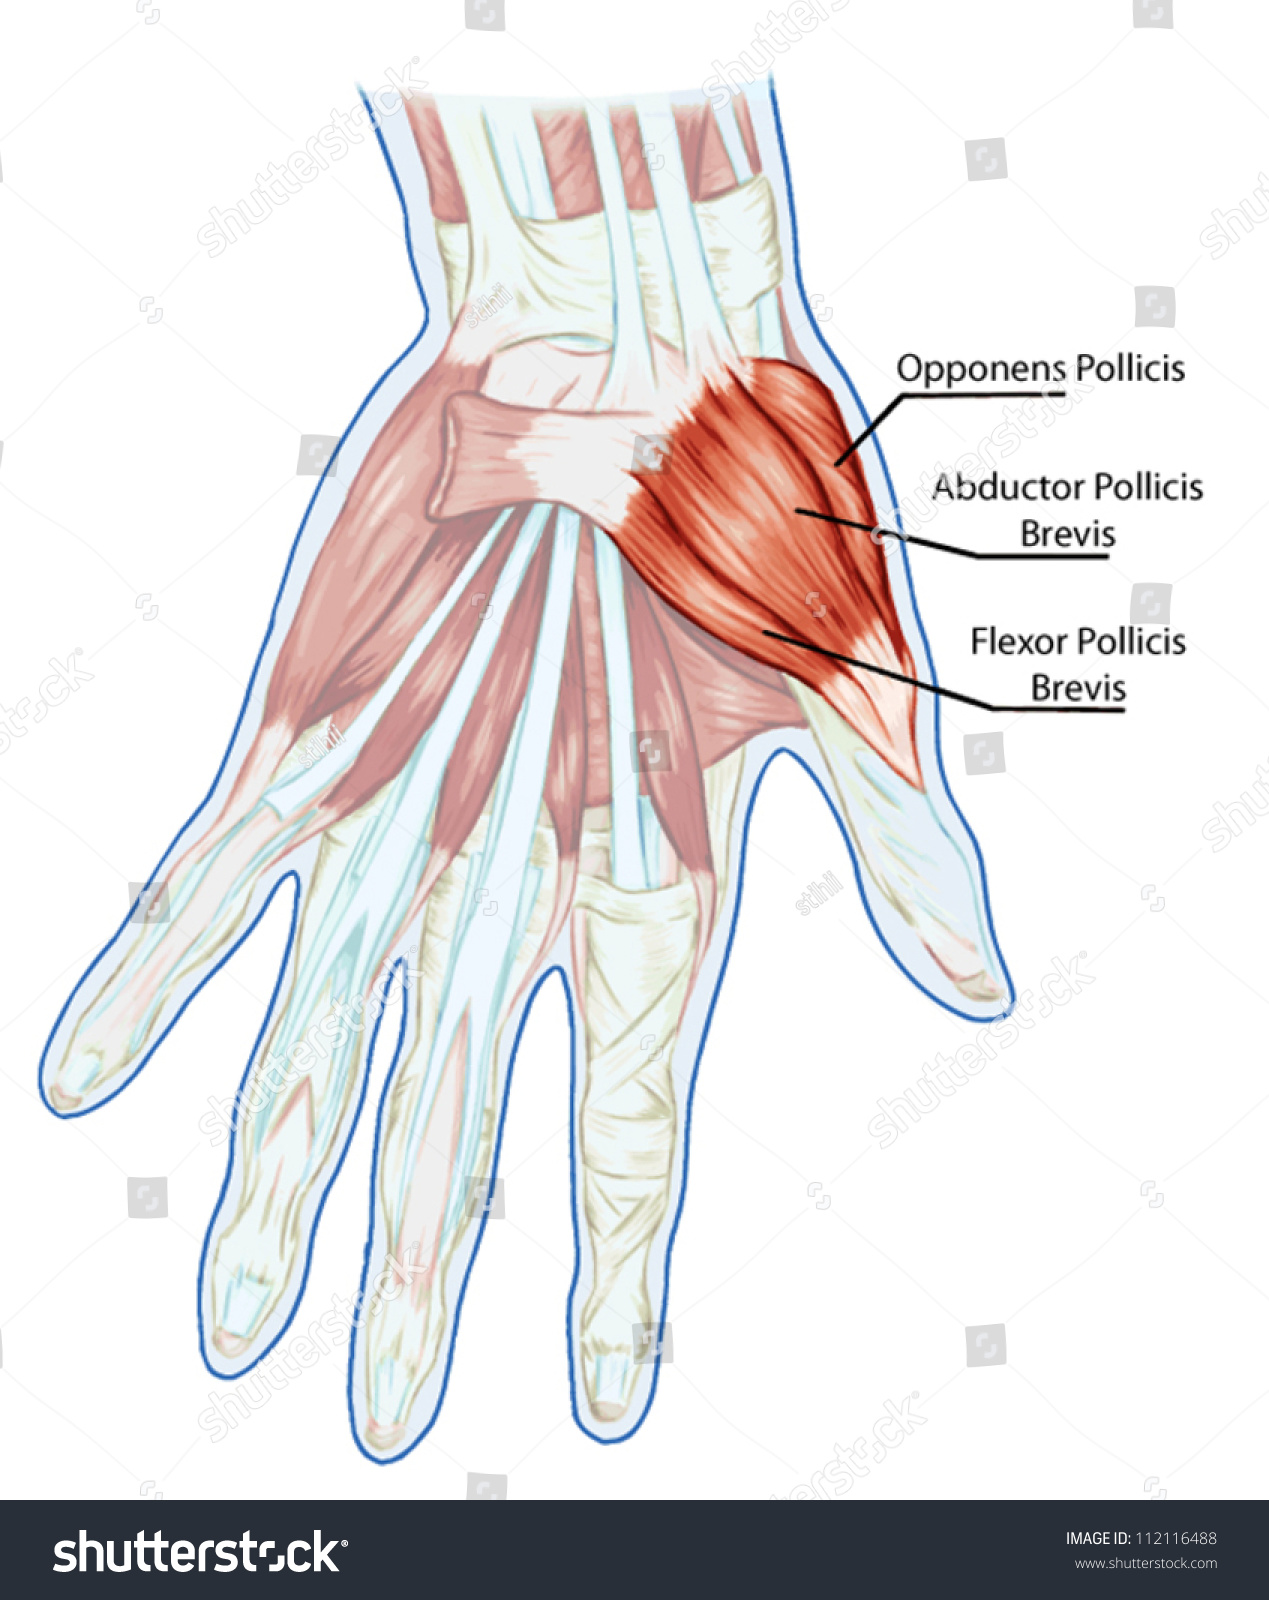 Anatomy Muscular System Hand Palm Muscle Stock Vector 112116488 ...